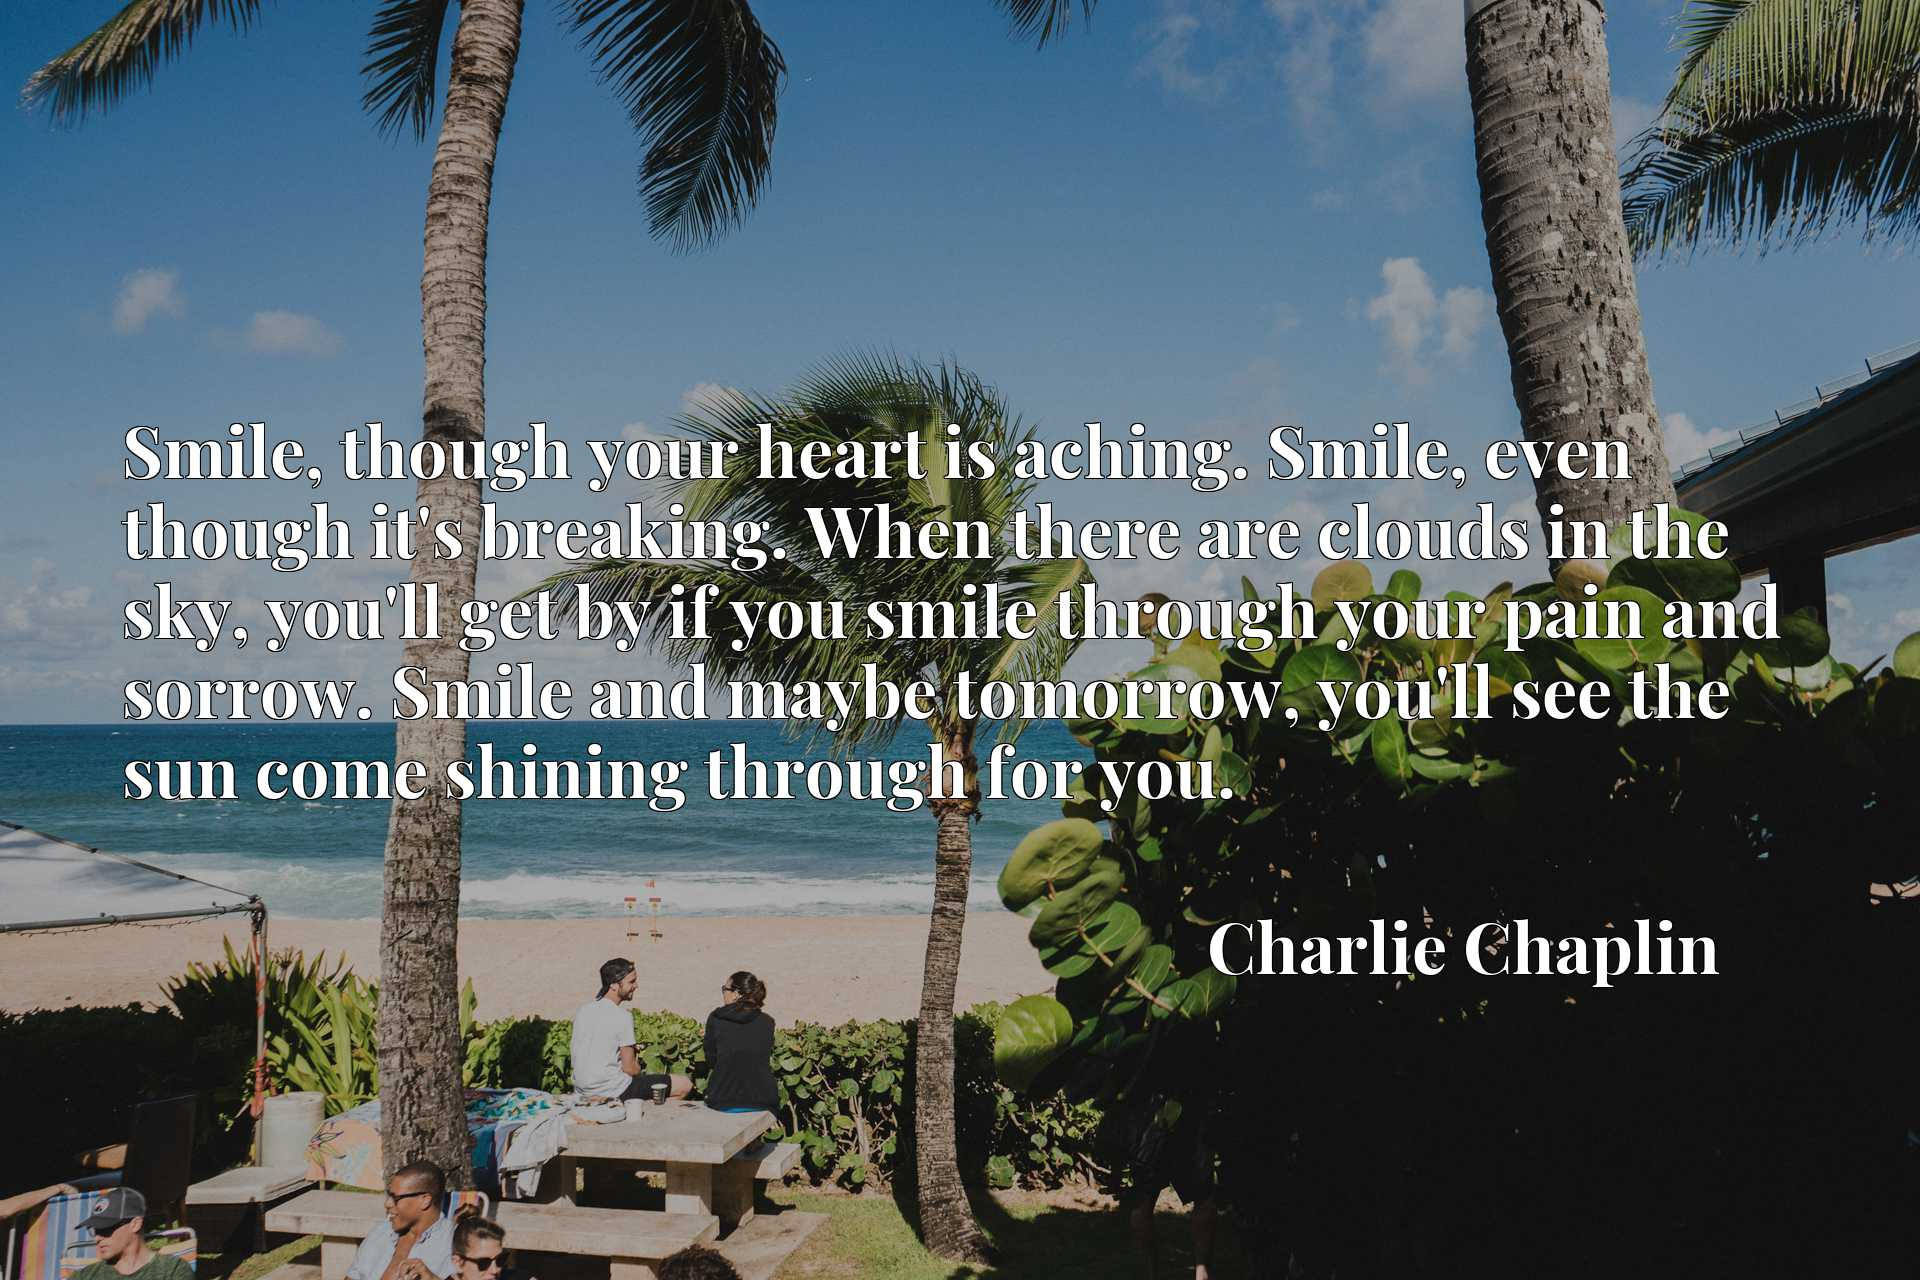 Smile, though your heart is aching. Smile, even though it's breaking. When there are clouds in the sky, you'll get by if you smile through your pain and sorrow. Smile and maybe tomorrow, you'll see the sun come shining through for you.